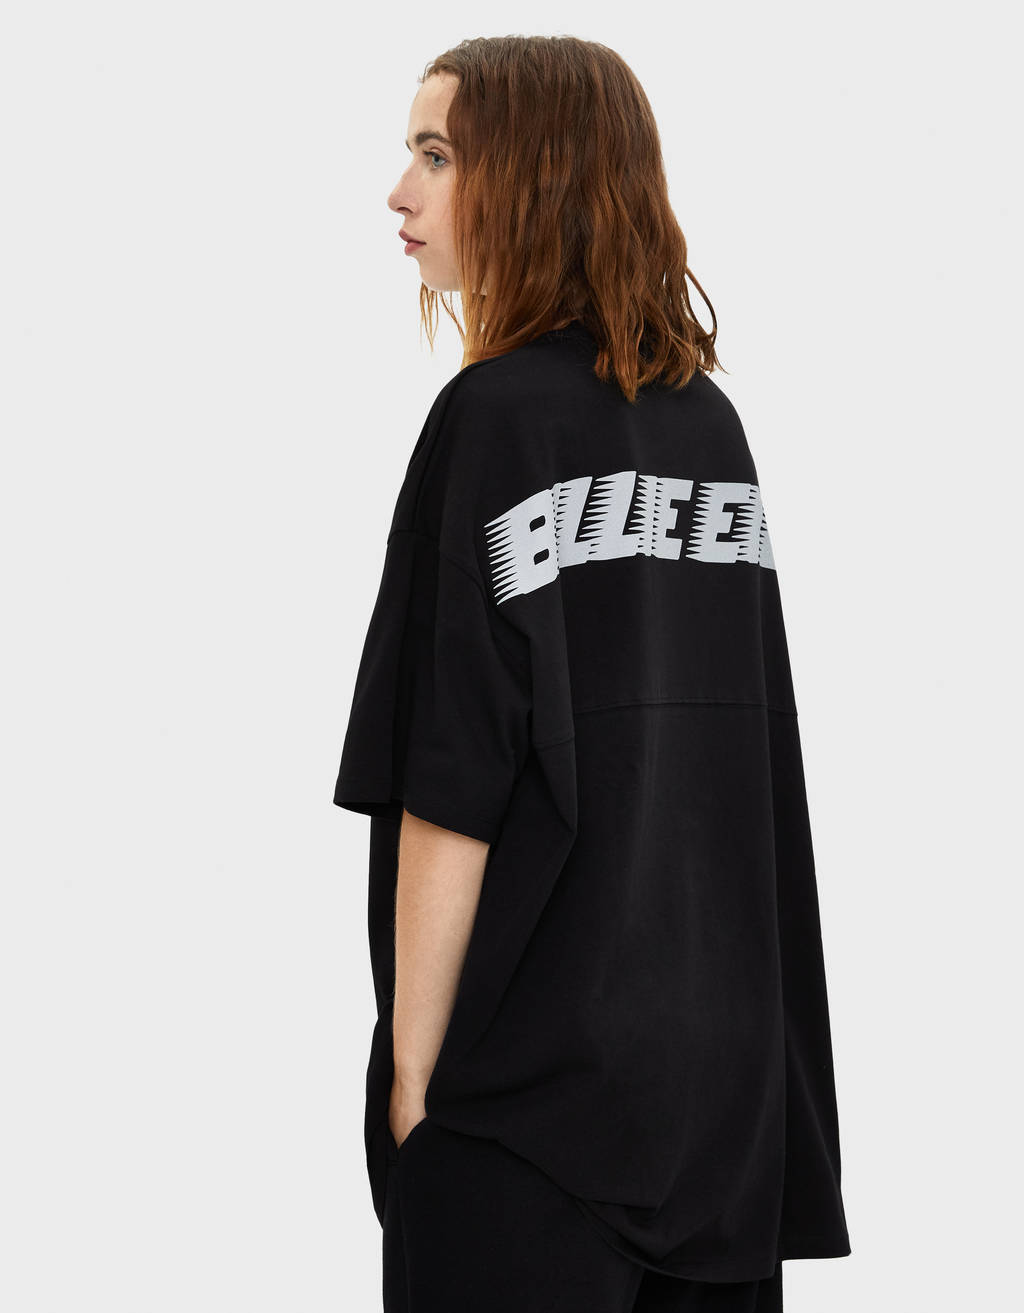 Camiseta reflectante Billie Eilish x Bershka